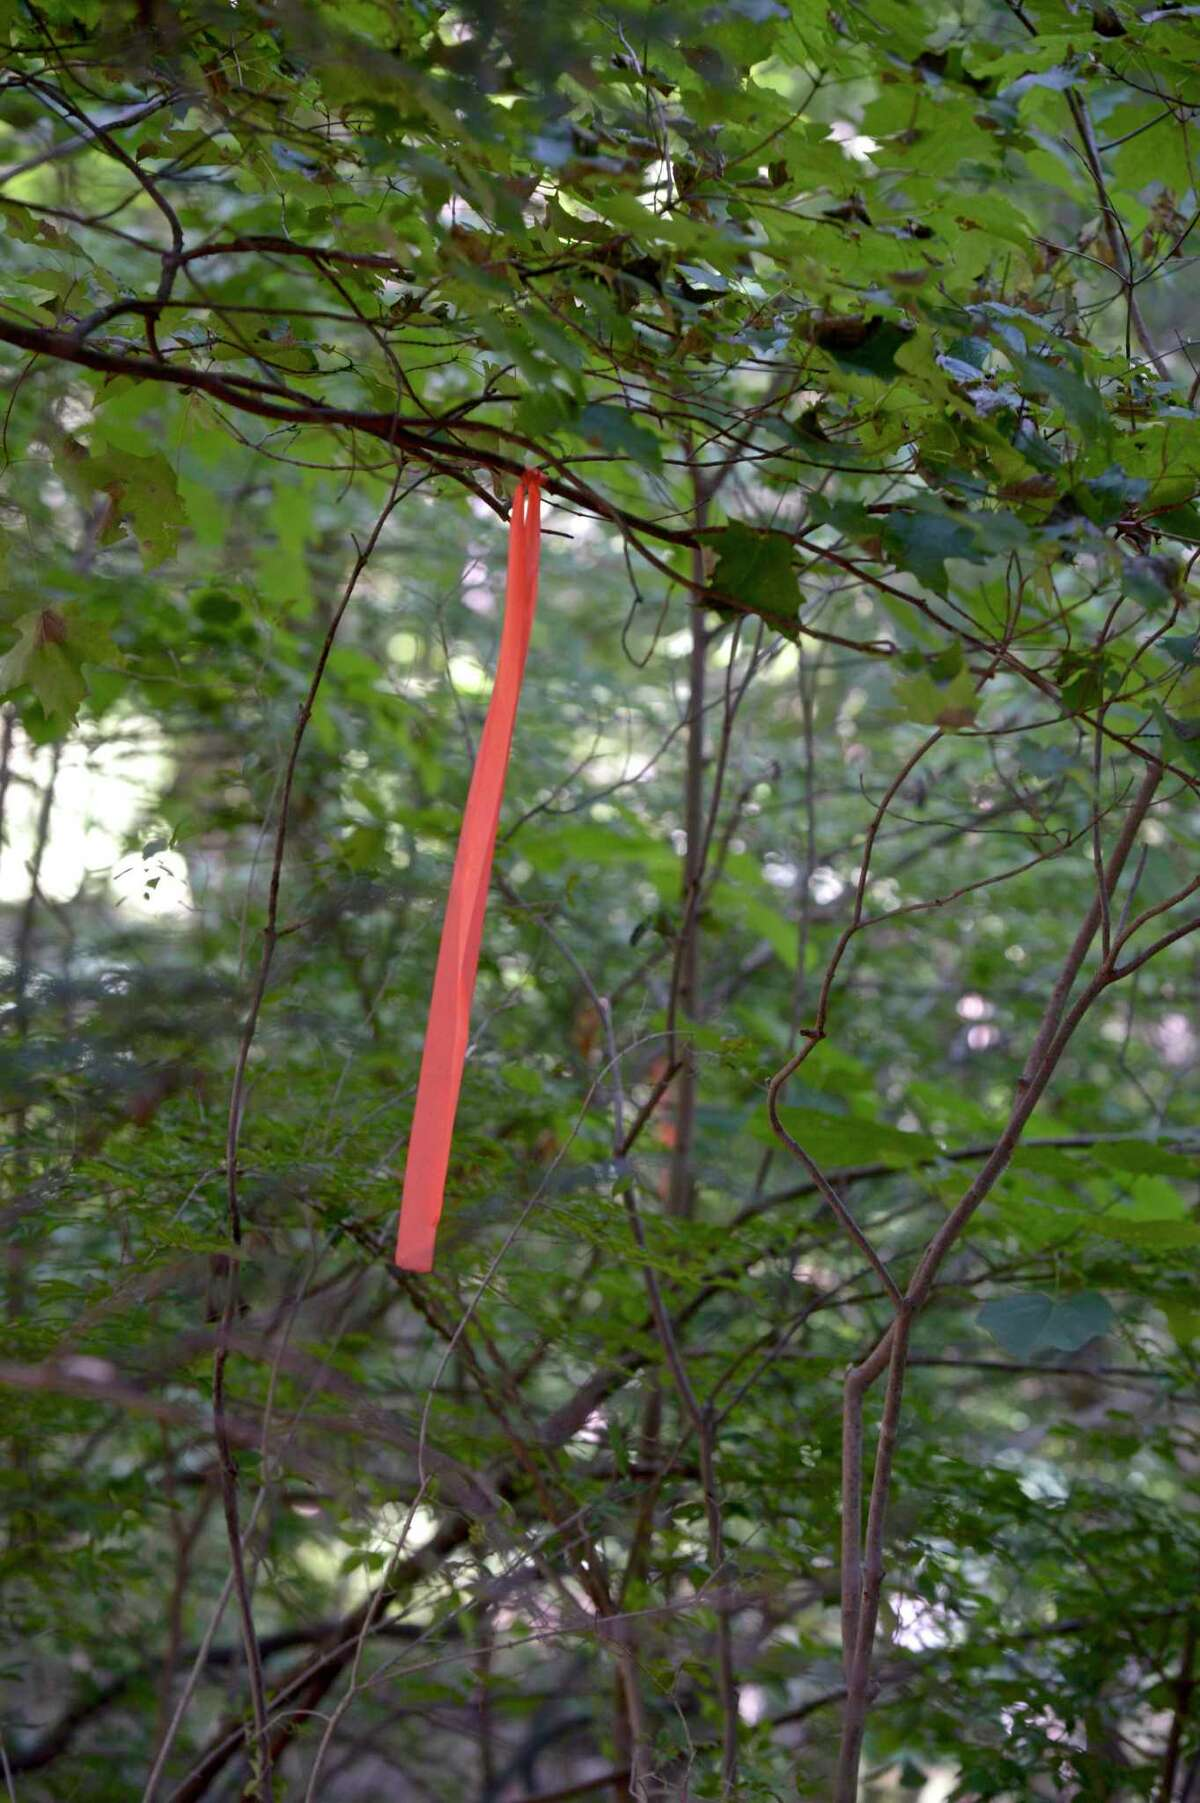 """Kelly Douthitt-Wilson and her neighbors are upset that Eversource plans to take down trees at the rear of their properties on Old Lantern Road. Pink ribbons mark the line that trees will be removed to. Eversource said crews will be removing """"tall-growing species from the rights of way and cut branches extending into the rights of way."""" Friday, July 30, 2021, New Milford, Conn."""